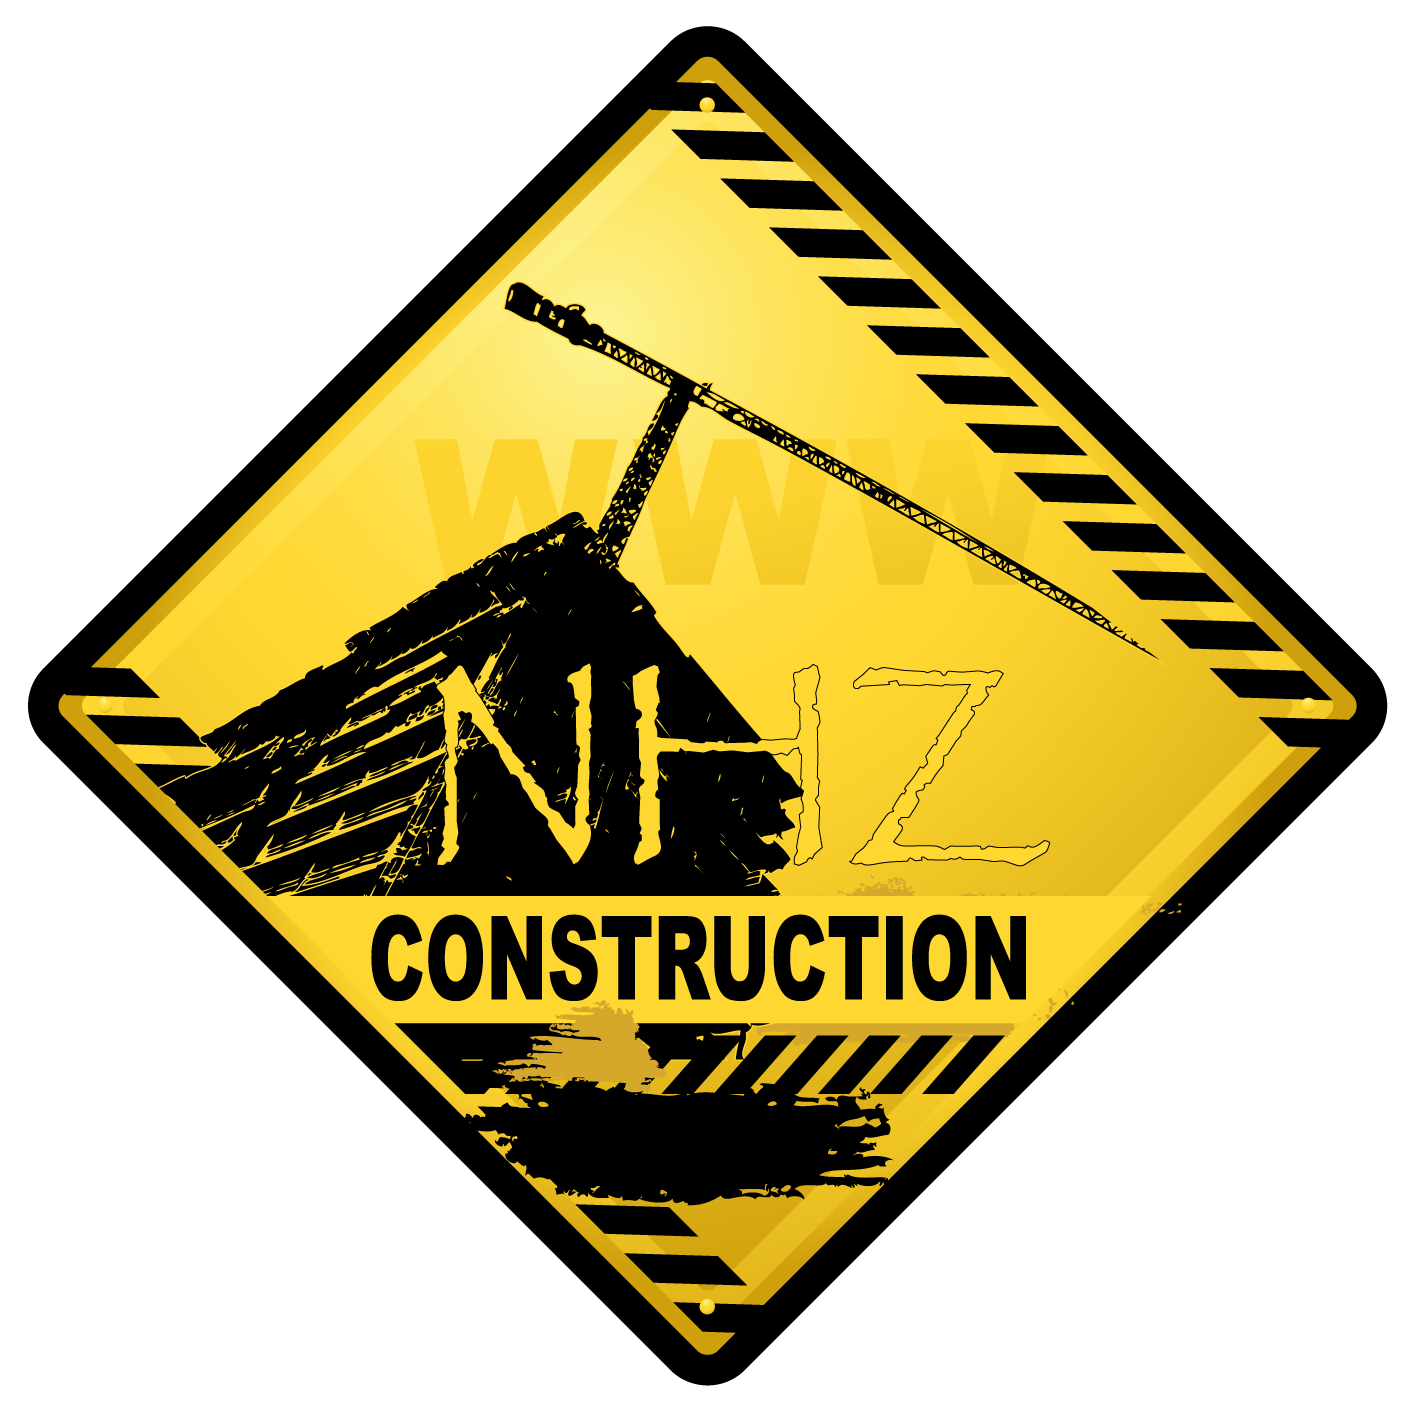 NHZ Constructions